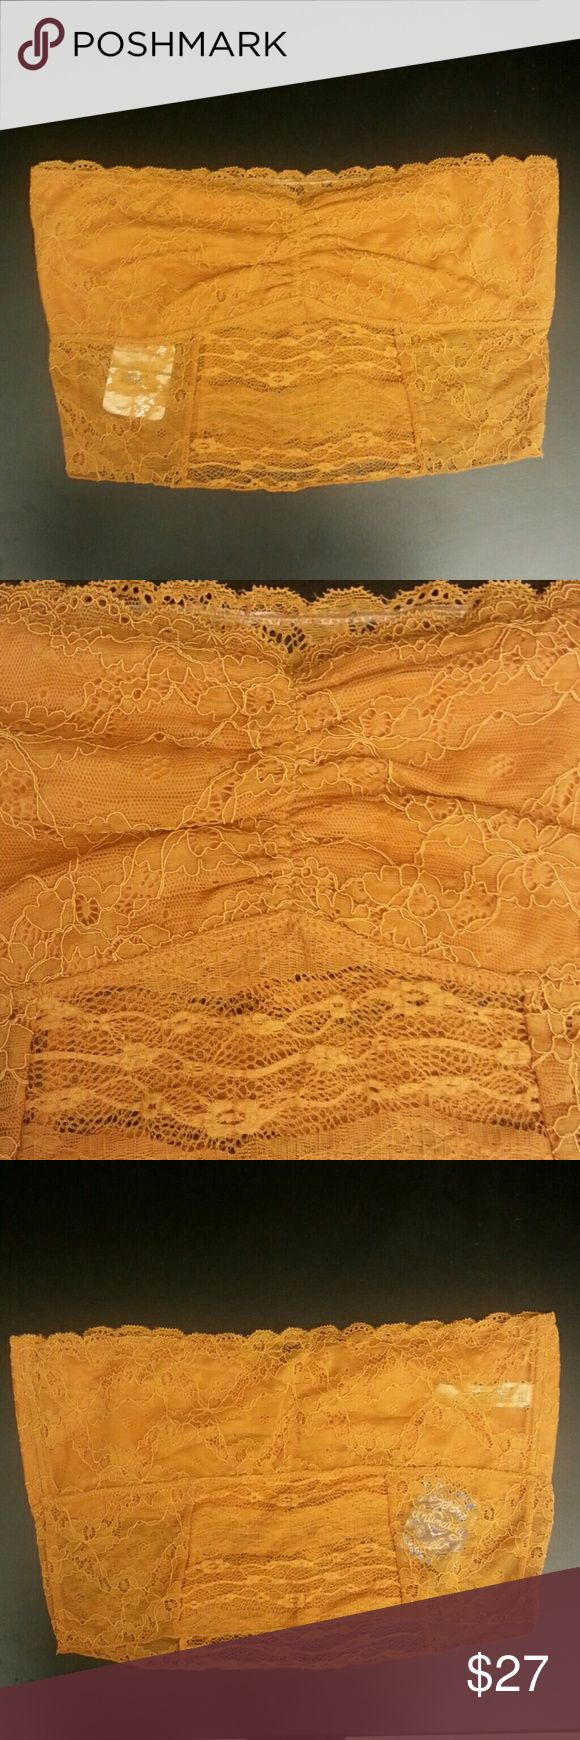 "SALE Free People Lace Bandeau Bra Lace bandeau bra from Intimately Free People. Golden orange-brown color listed as Amber. This measures about 14.75"" at the bust, unstretched. Material is stretchy. Free People Intimates & Sleepwear Bandeaus"